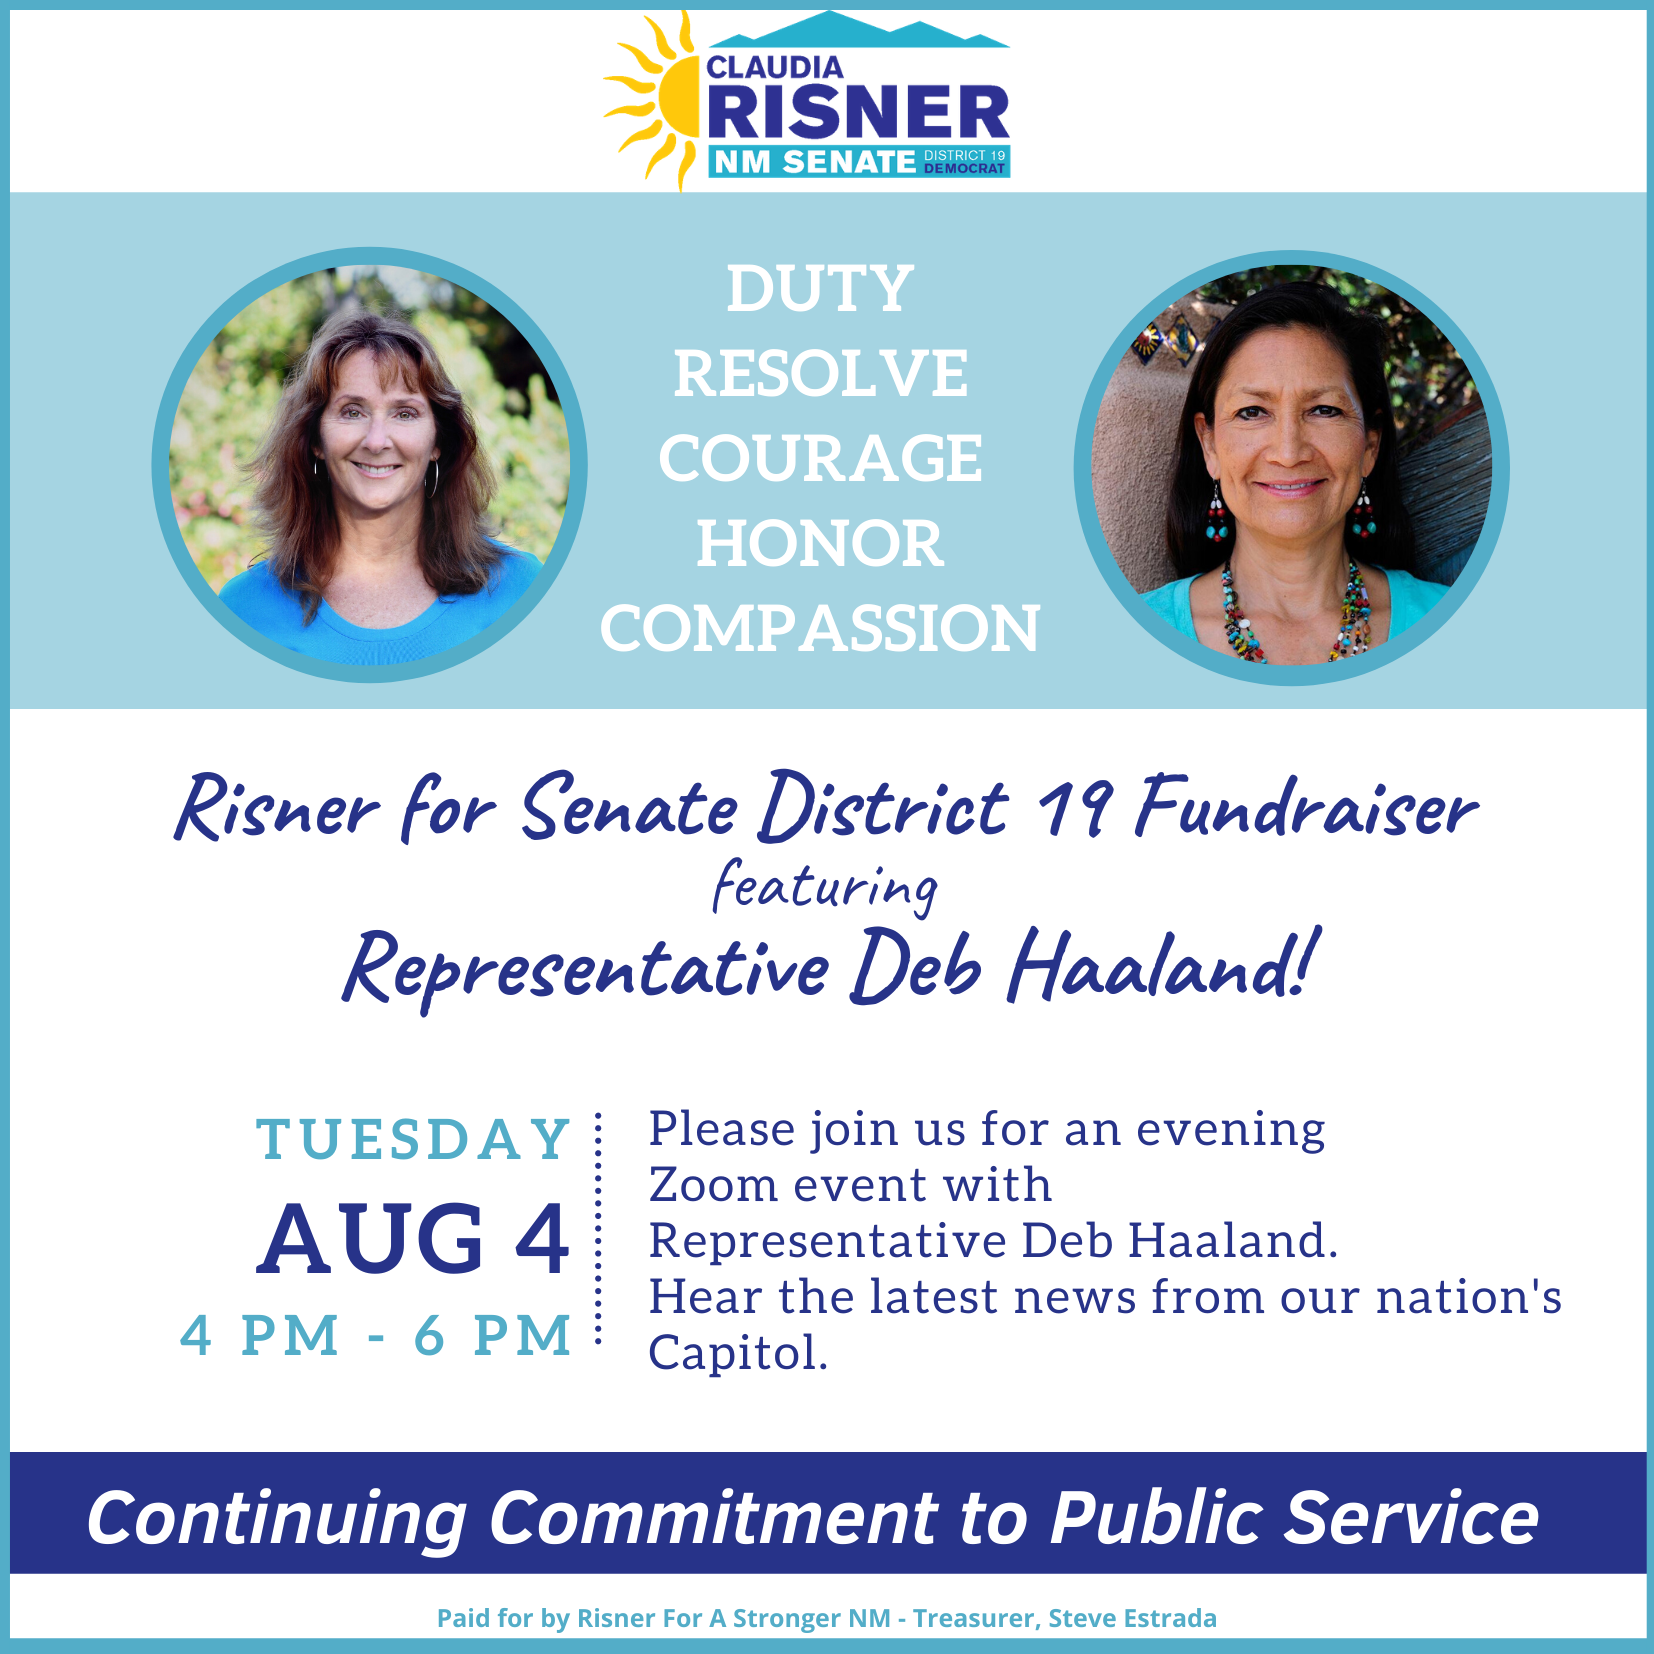 RISNER'S Fundraiser with Representative Deb Haaland Tuesday, August 4th from 4 pm - 6 pm